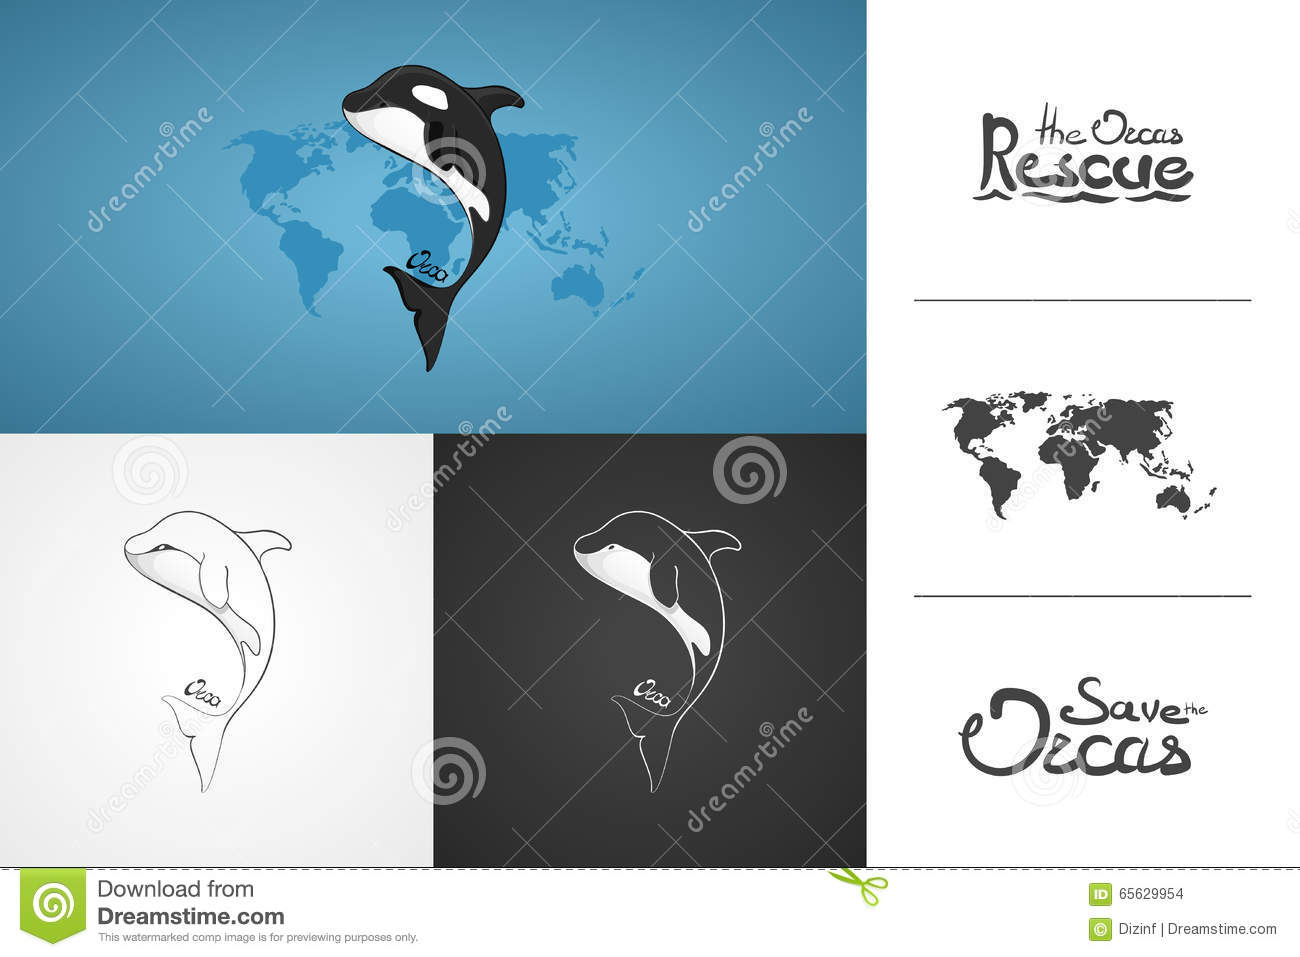 orca whale outline cartoon with Stock Illustration Whale Orca Concept Vector Hand Drawn Illustration Logo Design Simple Icon Text Sketch Art Flat Design Lettering Inf Image65629954 on Vector Of A Cartoon Orca Playing With A Soccer Ball Coloring Page Outline By Ron Leishman 13719 further Cute Whale Tattoo hjcNmWL2y9QGvFexBaW0oHaUuaRh8QHhGEuUQ3PCc 4 furthermore 1112484 Royalty Free Whale Clipart Illustration together with Dog Paw Print Transparent Background furthermore Black And White Whale WU ipruridkpfwKWuKSDAewwfO4LgokIQCXGWqFZ7 s.